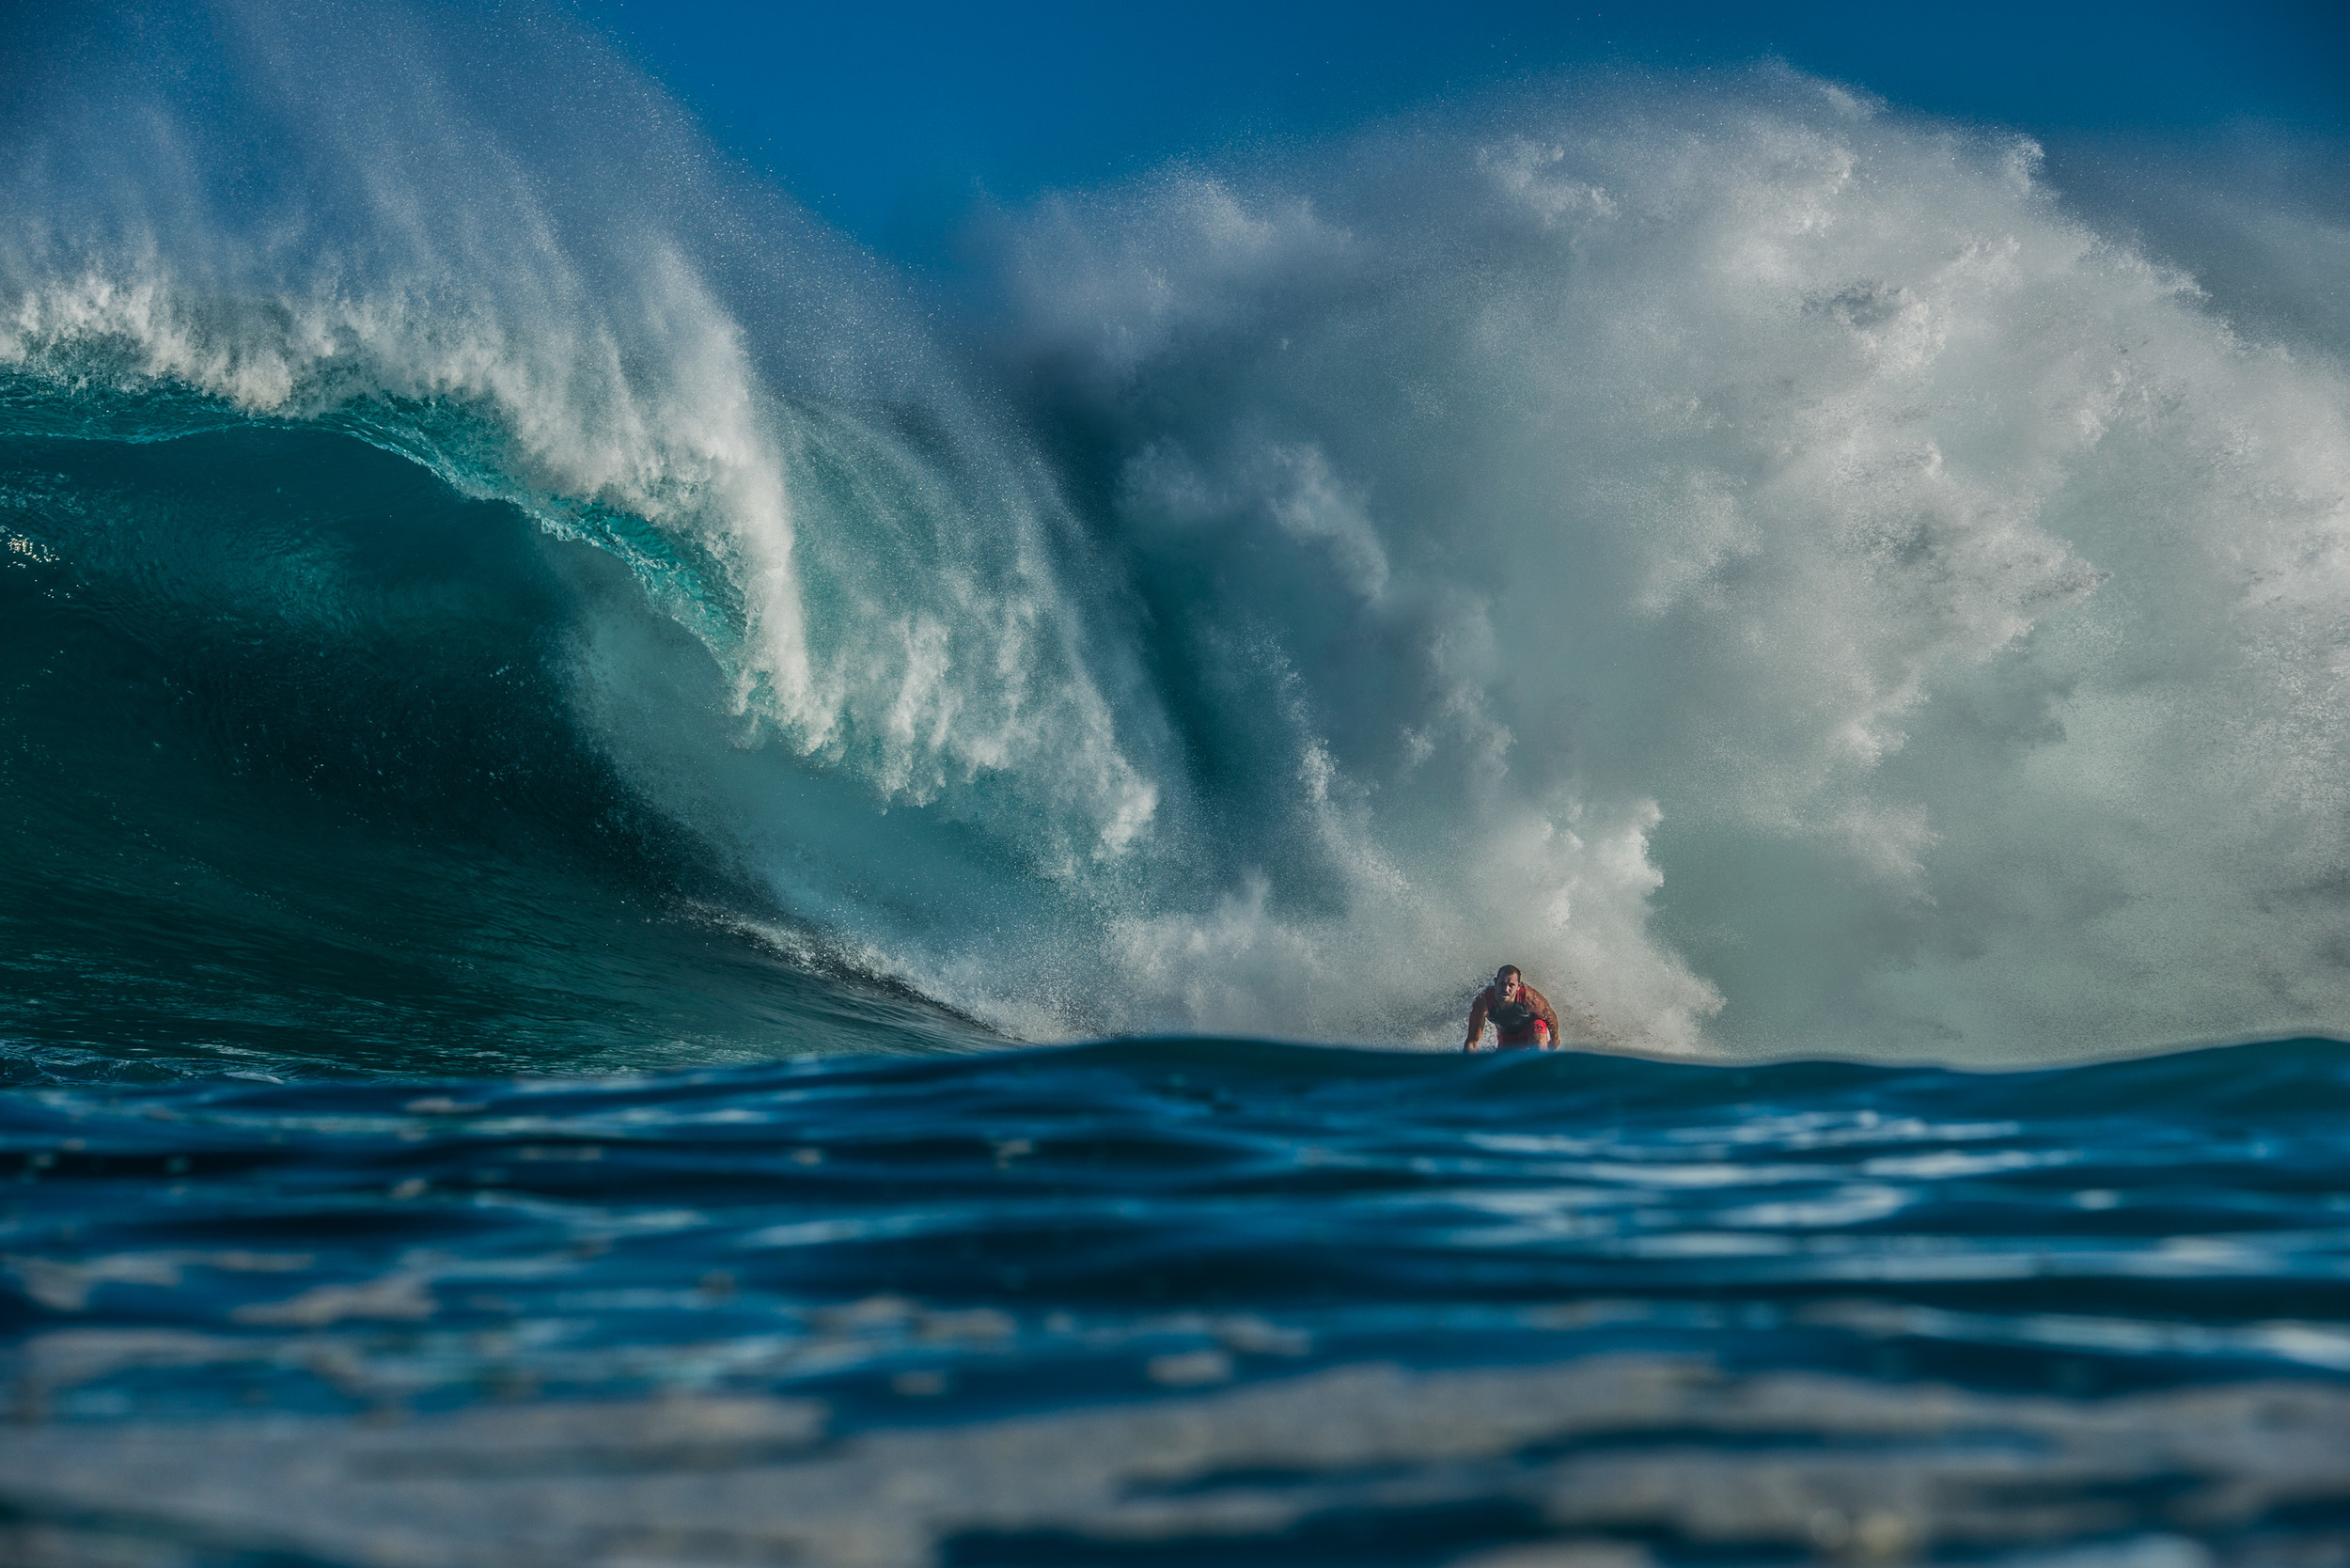 So many amazing waves ridden...